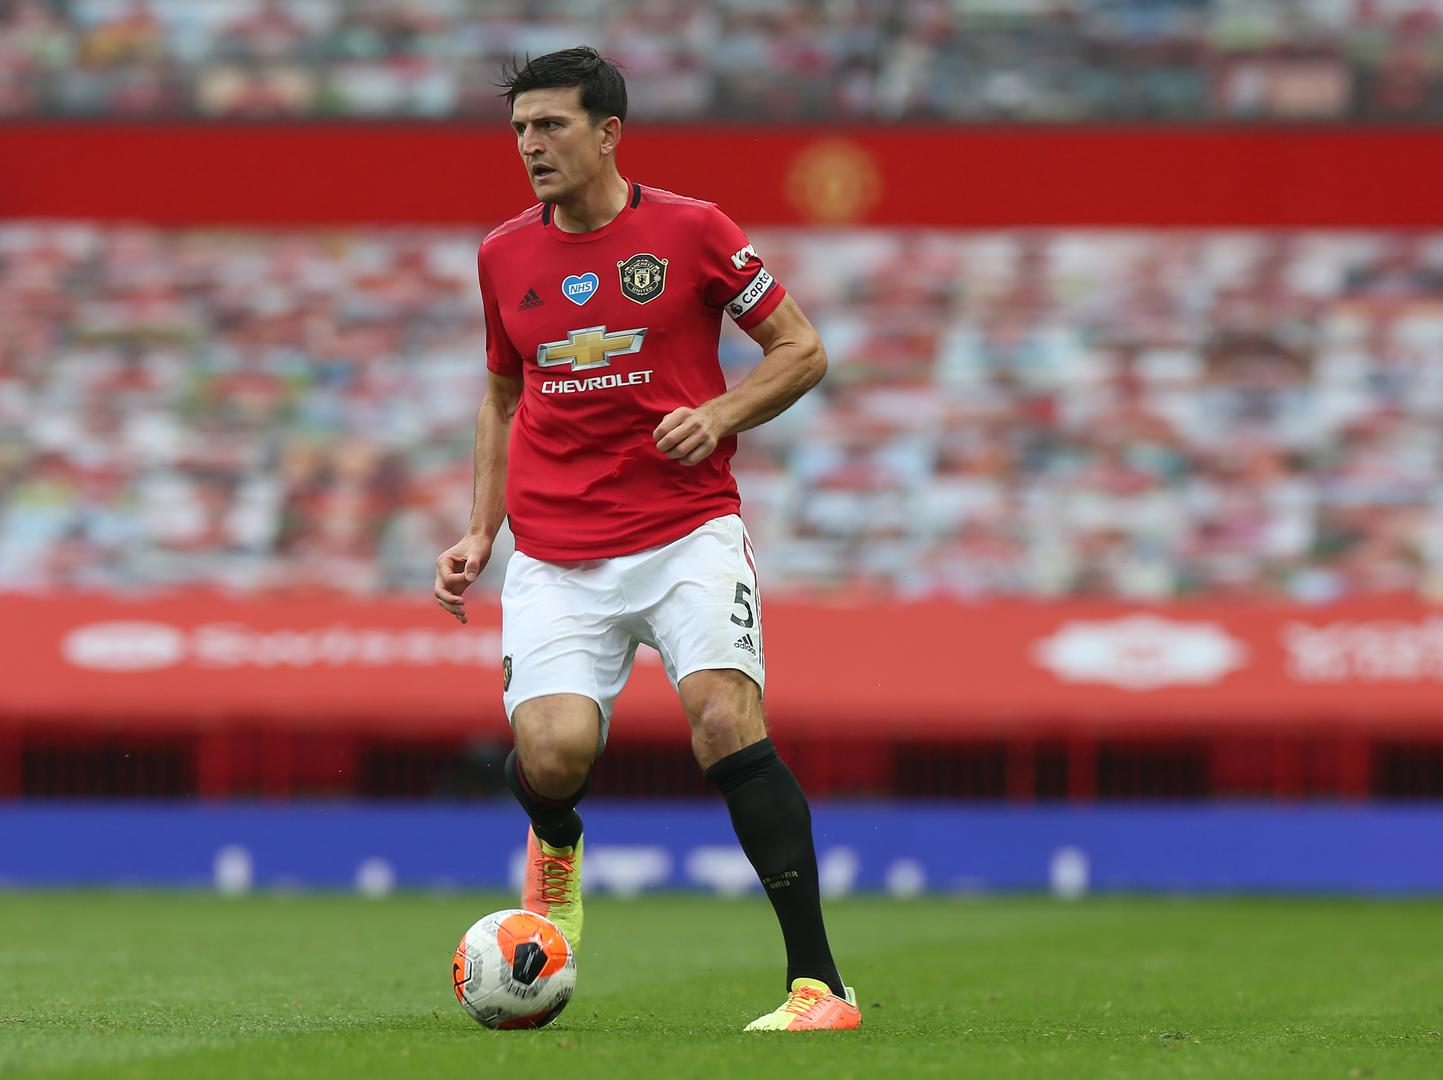 Harry Maguire playing for Manchester United